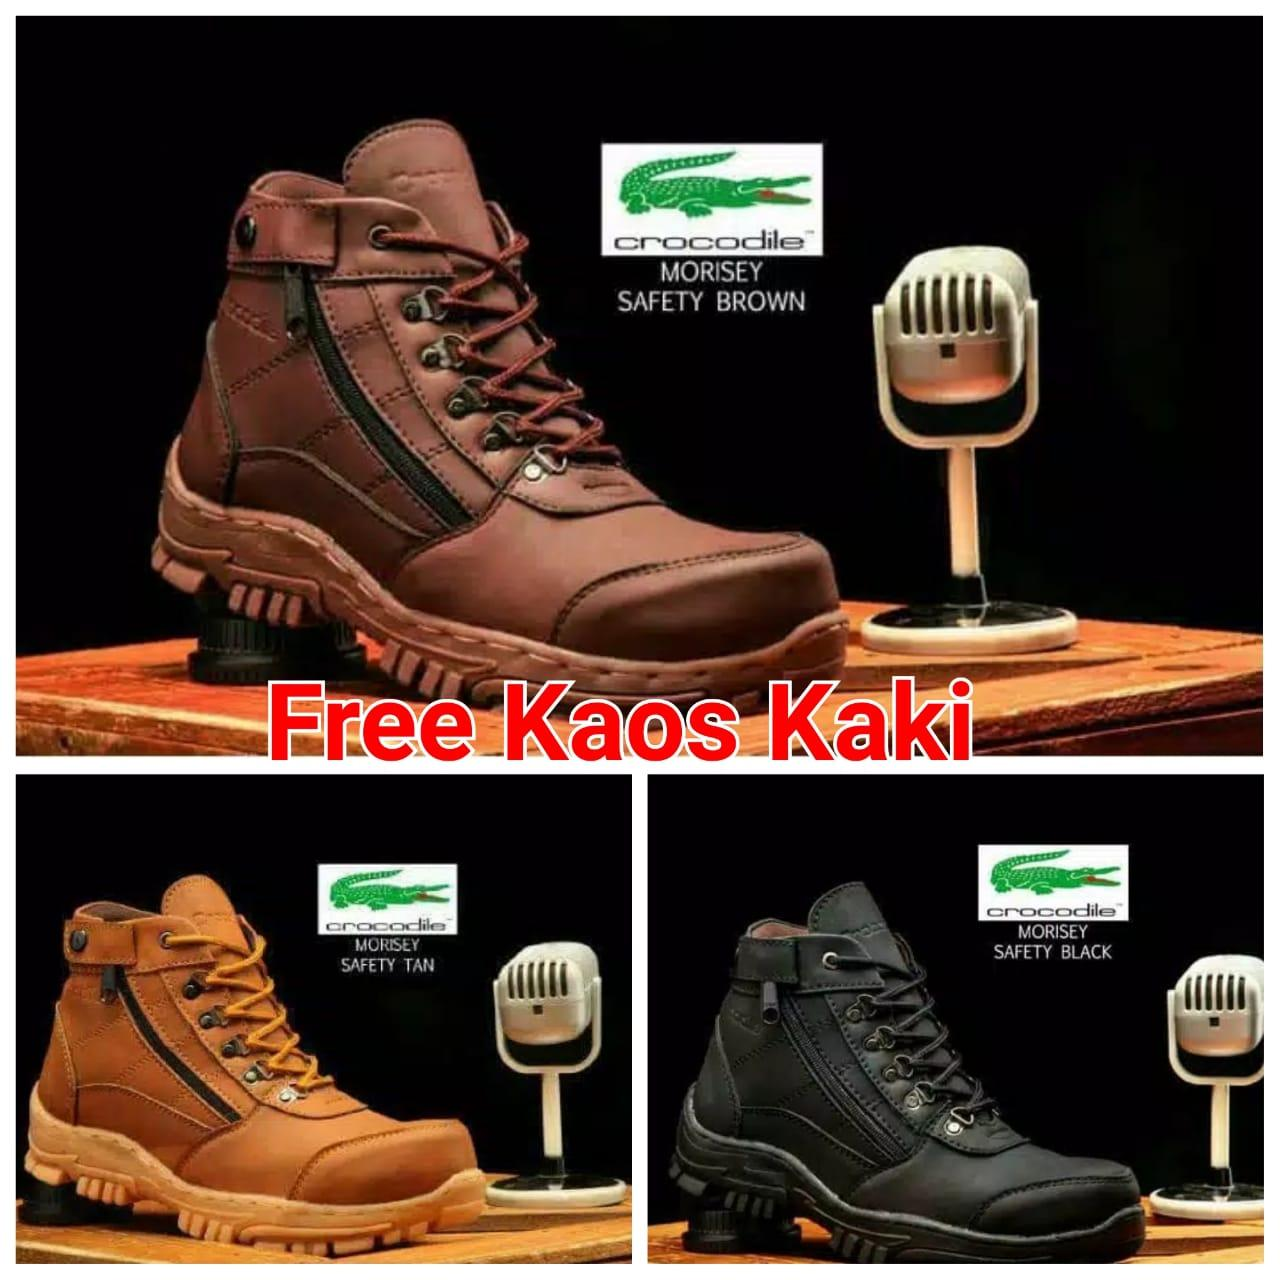 Sepatu Safety Boots Pria Army Delta Tactical project kerja lapangan Touring Crocodile Morisey Brown Black Tan Safety Boots Shoes